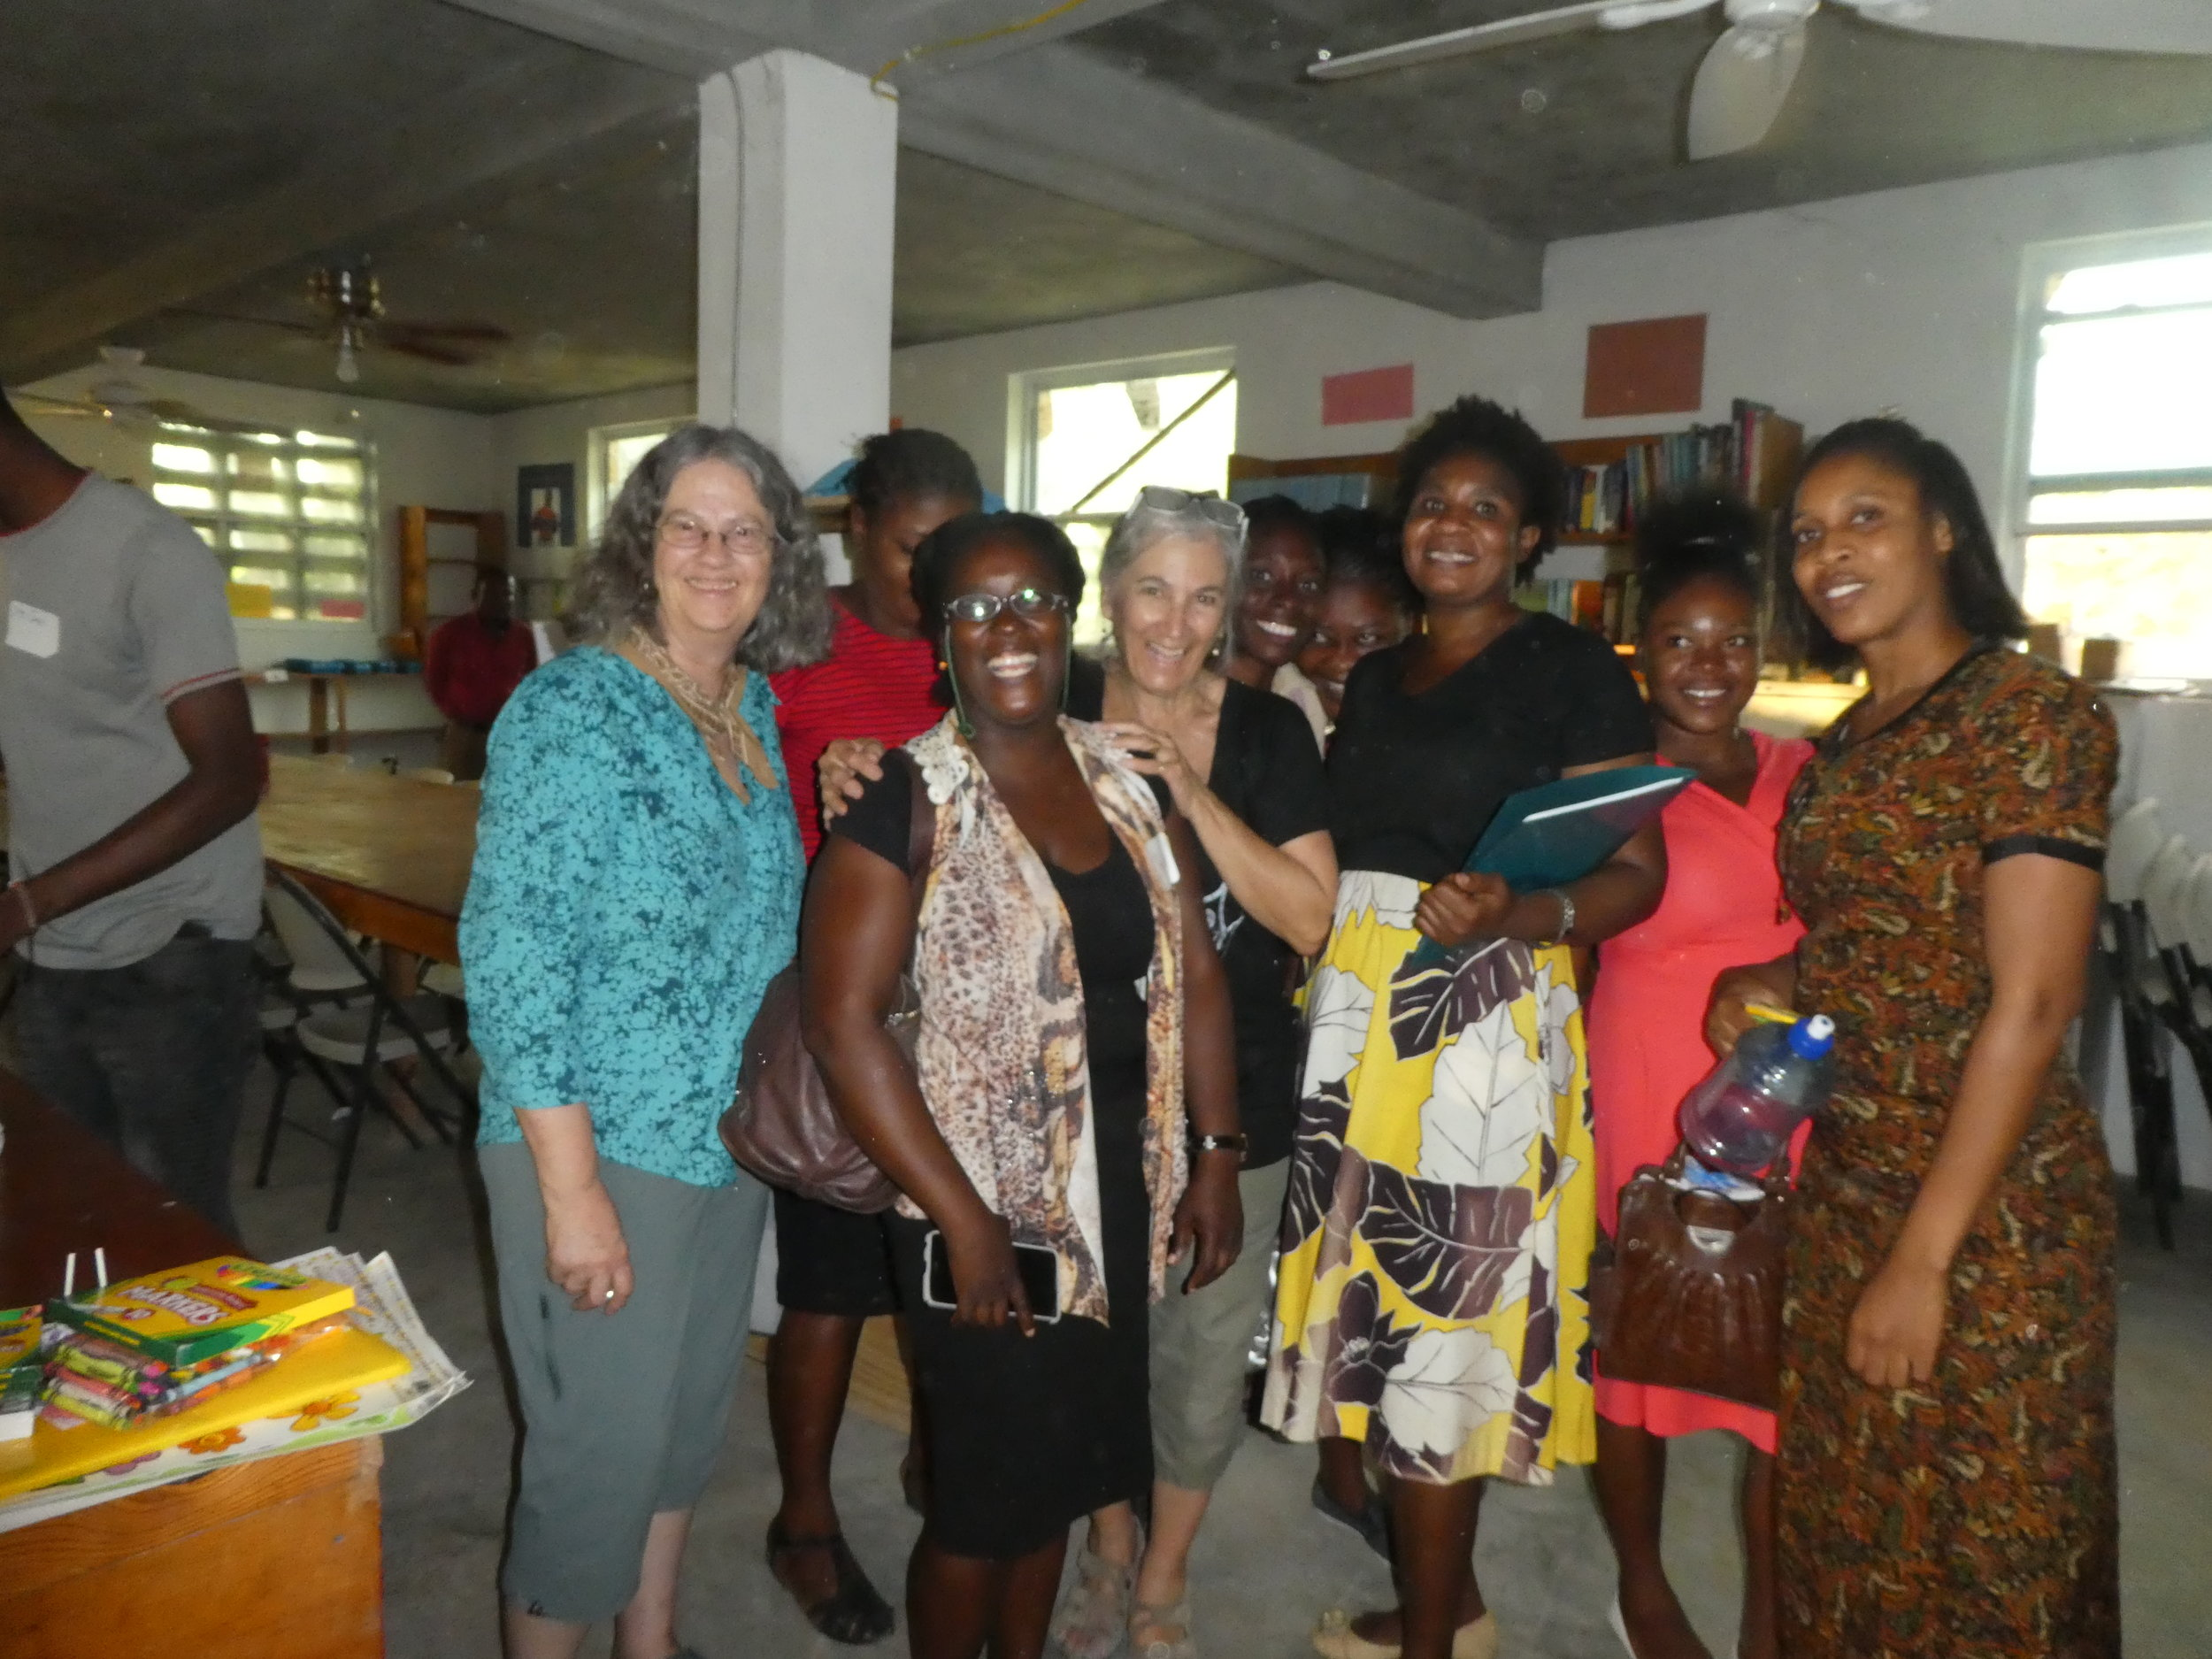 For the second year, Linda (far left) and Veronica (not shown) developed a Teacher Training.  Here are the teachers in the new Library where over 800 books were donated.